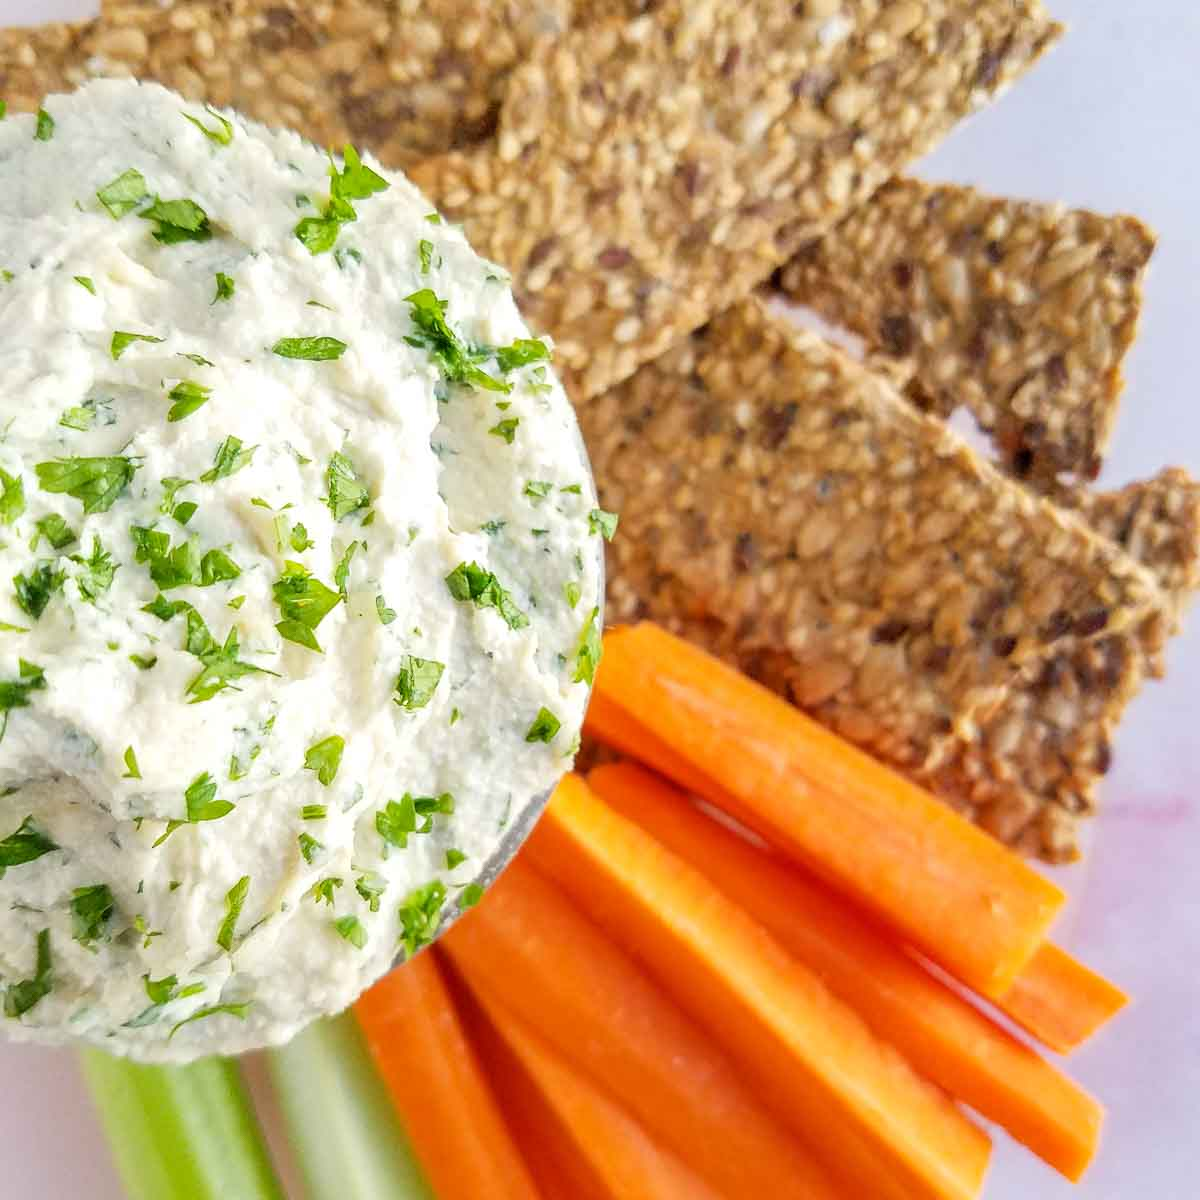 herb and garlic vegan cheese in a bowl with celery and carrots